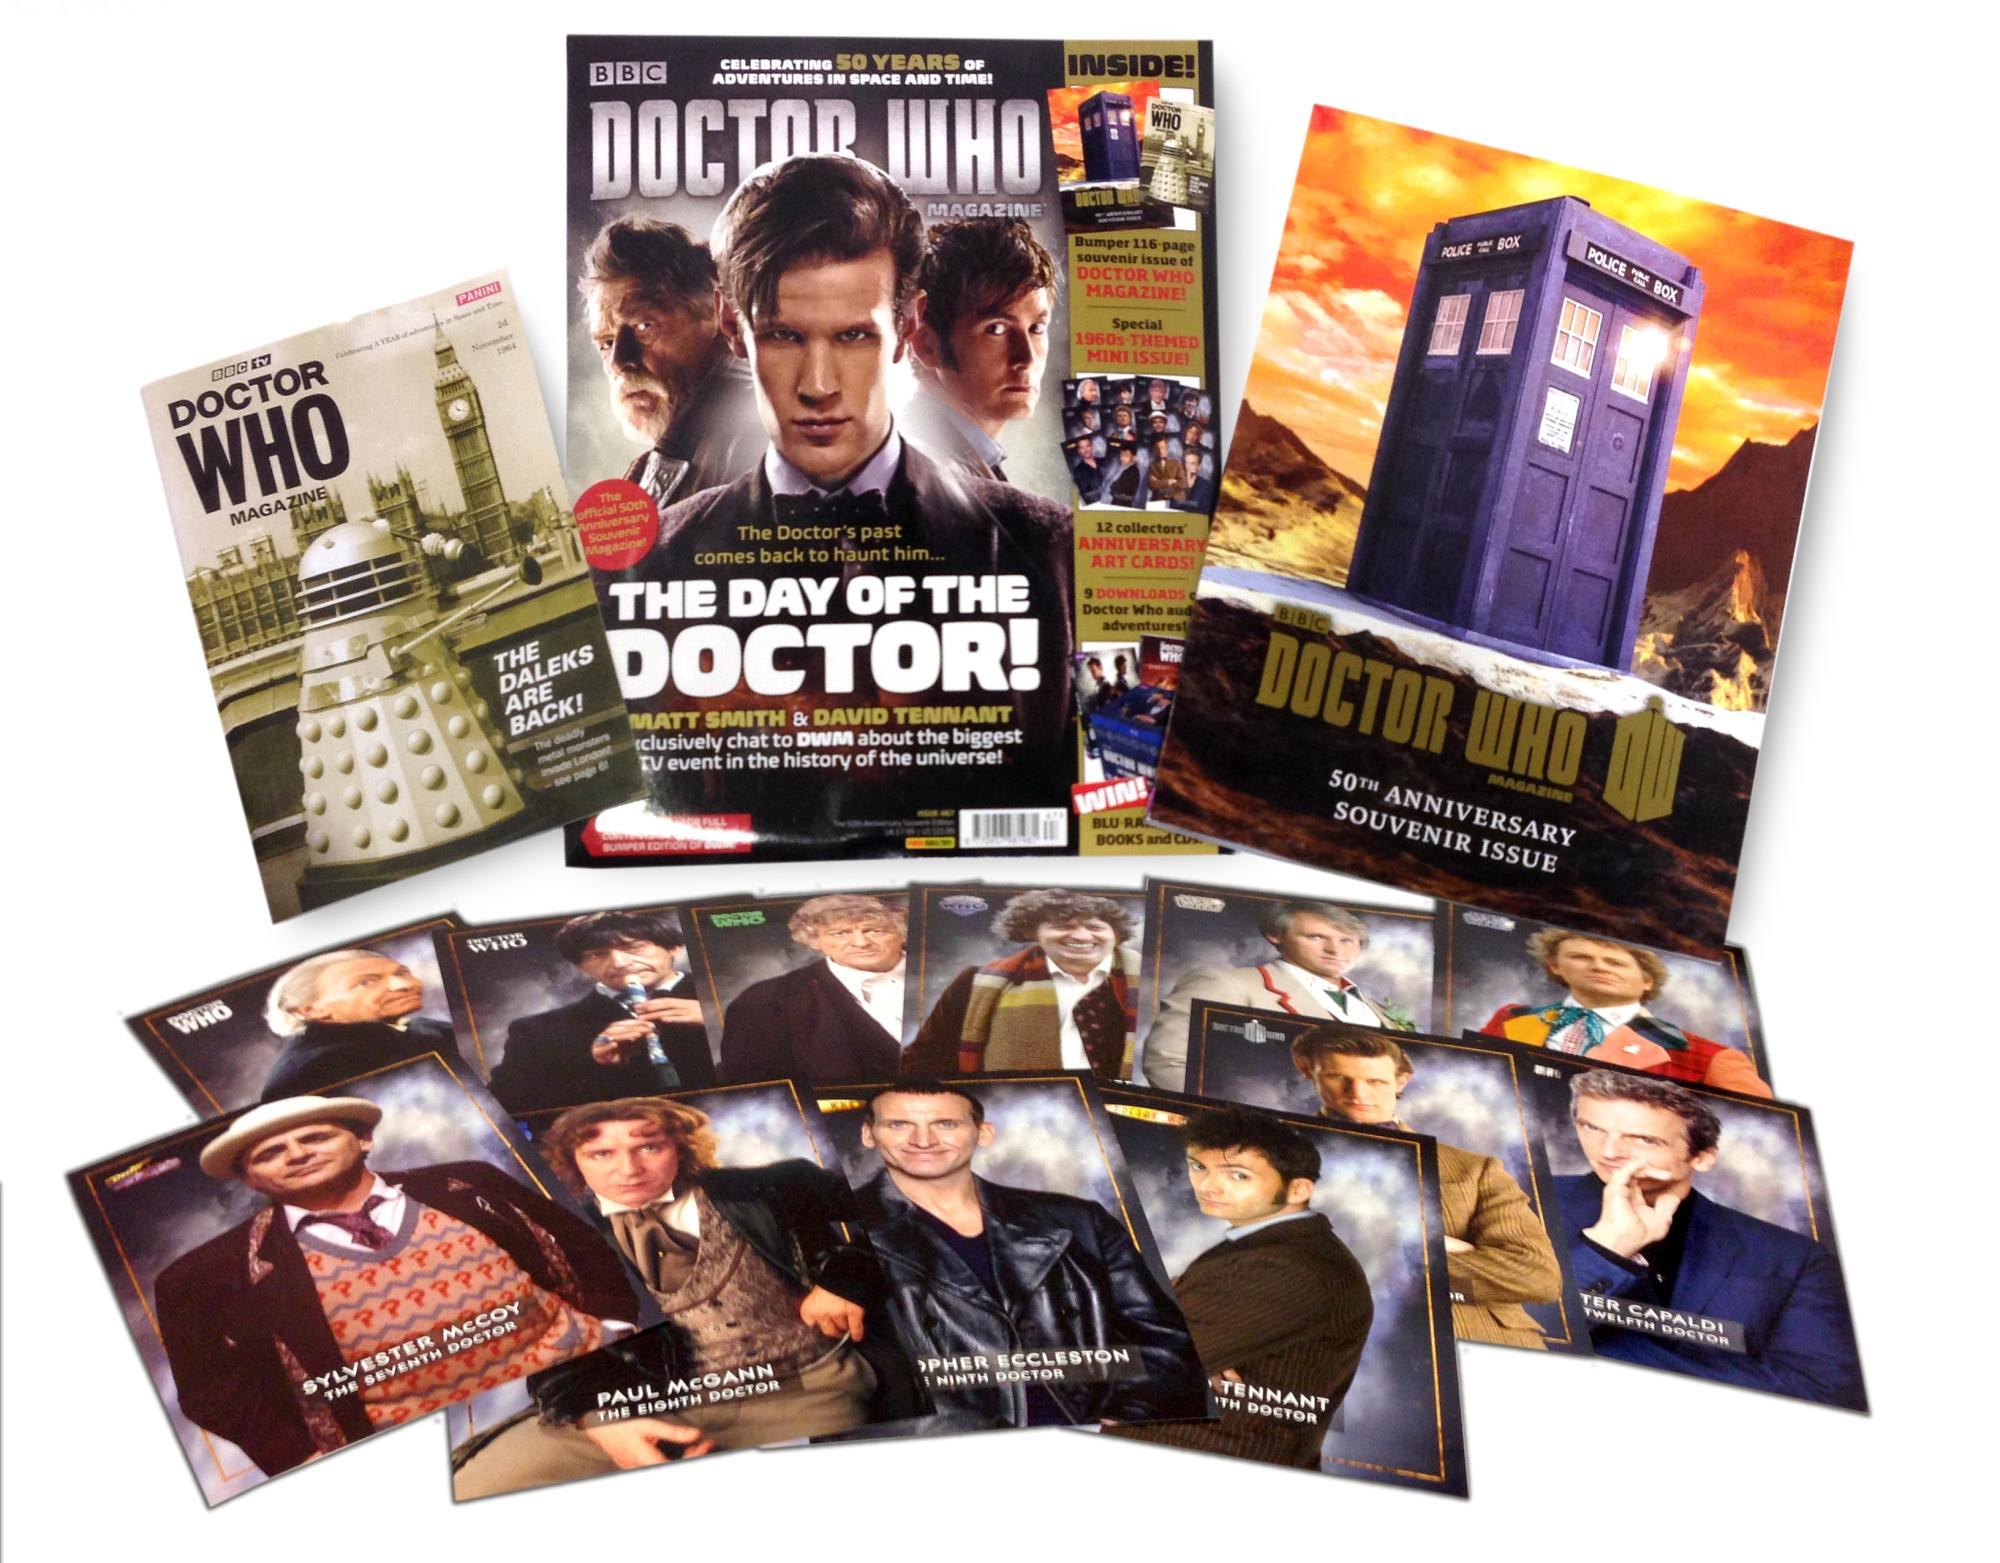 Doctor Who Magazine 467 (pack shot) (Credit: Doctor Who Magazine)